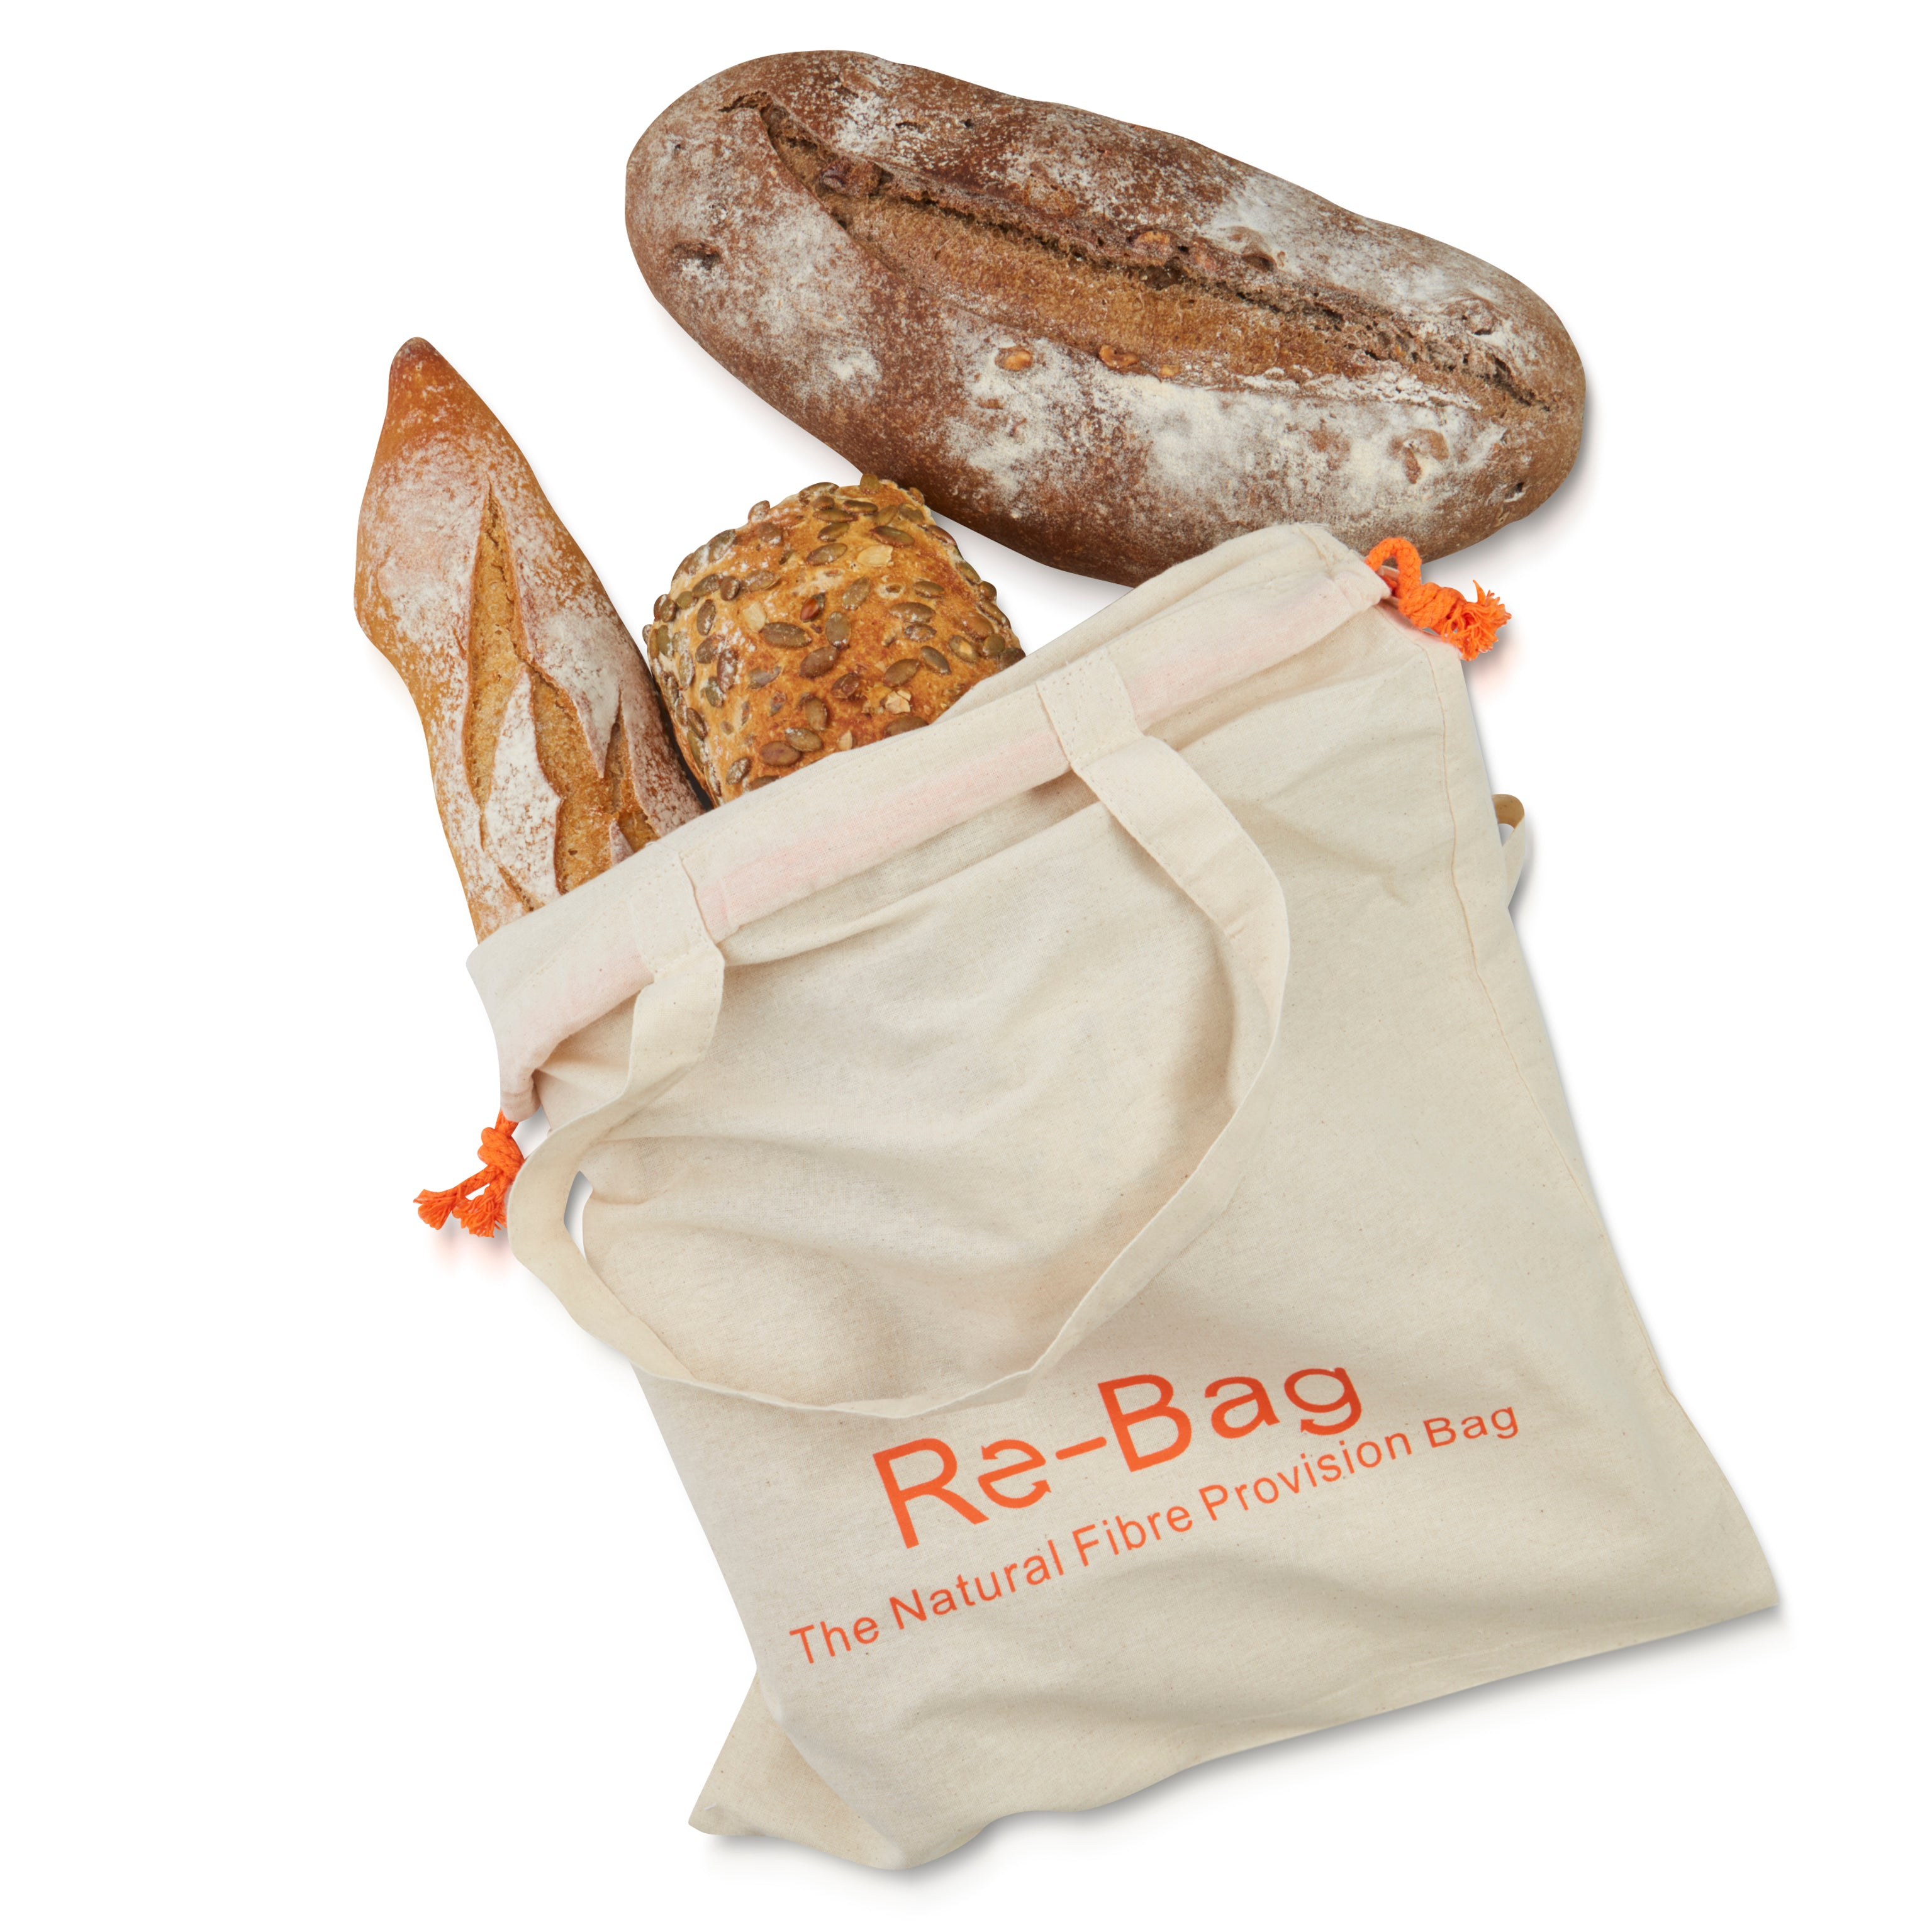 Provisions Bag - for all your shopping